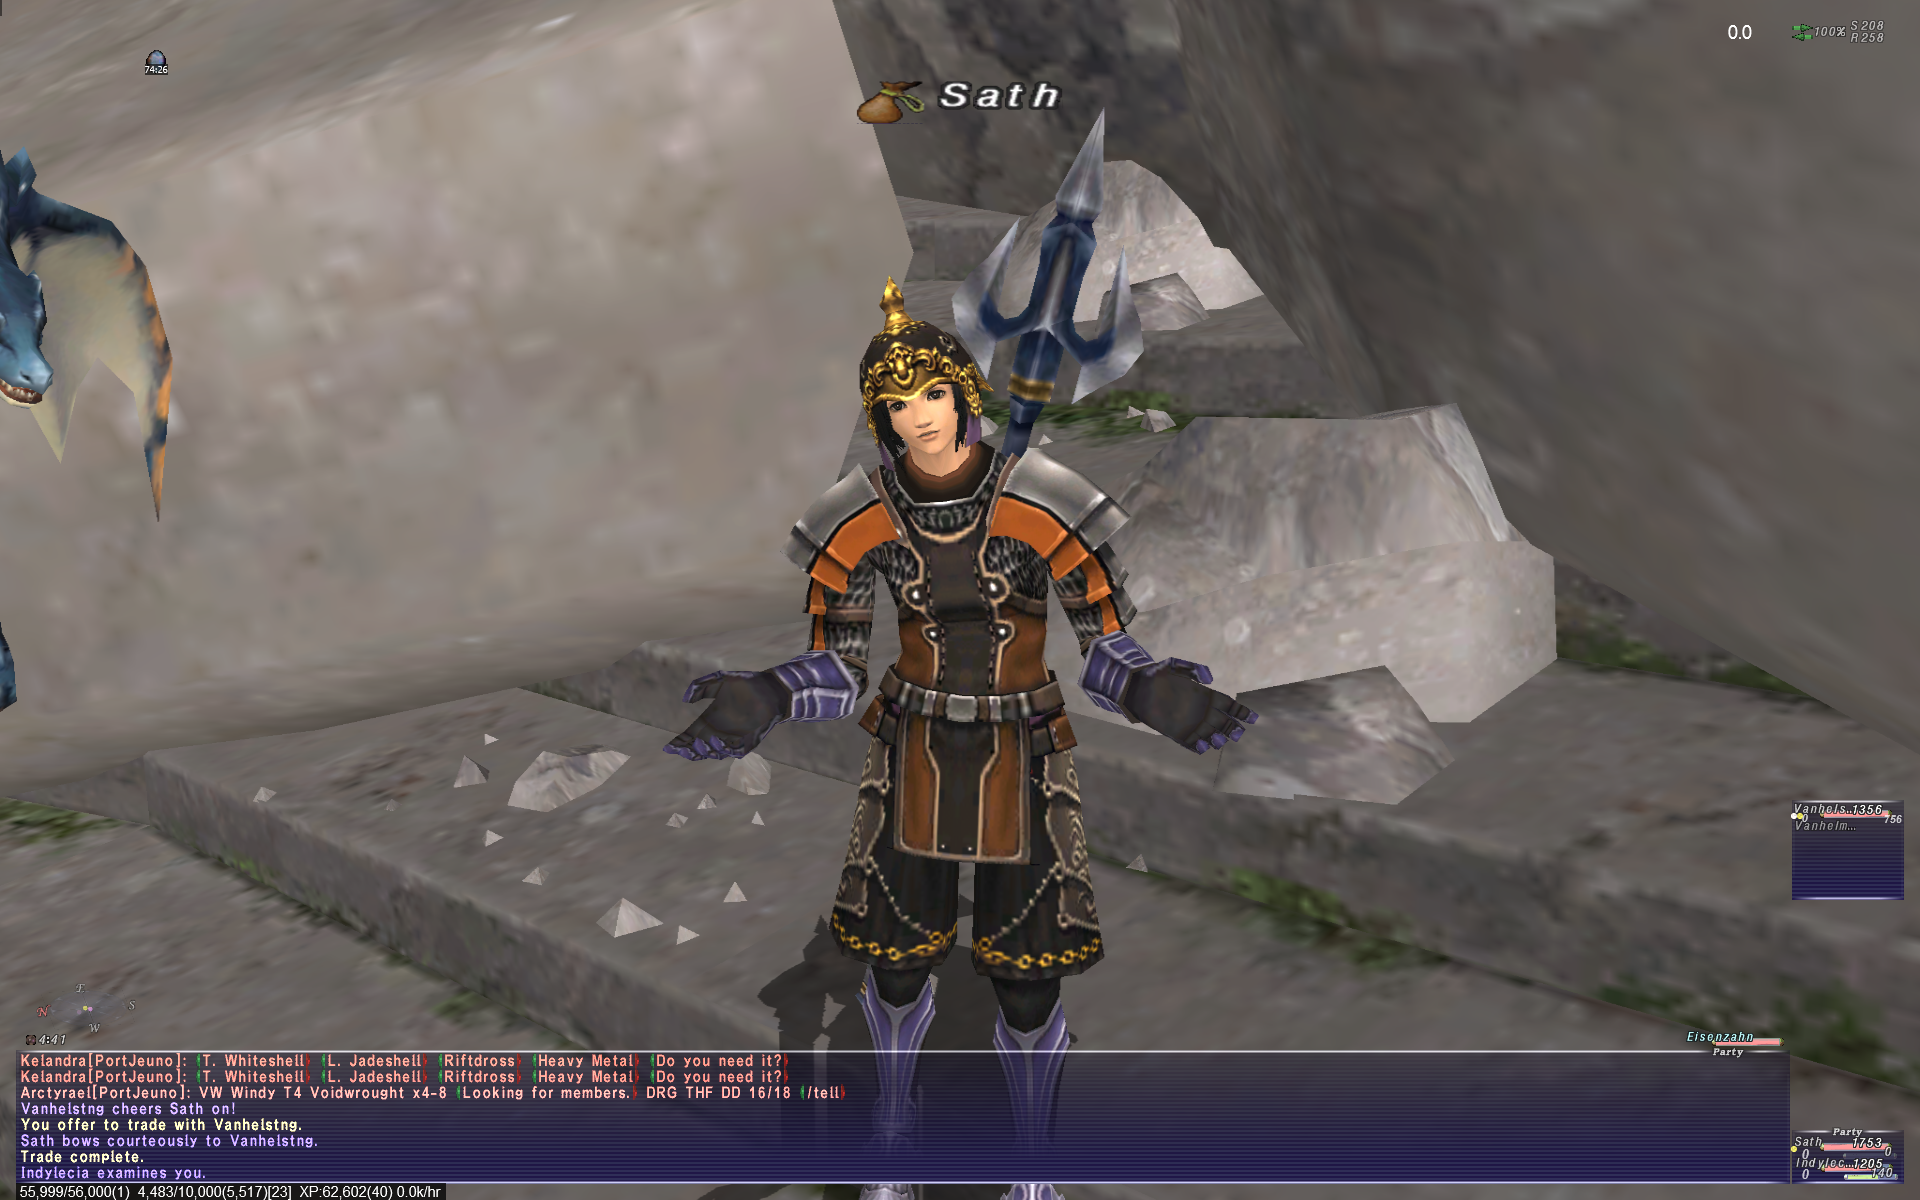 sathfenrir ffxi doing this that comes love down proph also caliburn grats tool shame like prophett moirai leviathan list relicmythic weapons seems completed known time long forever